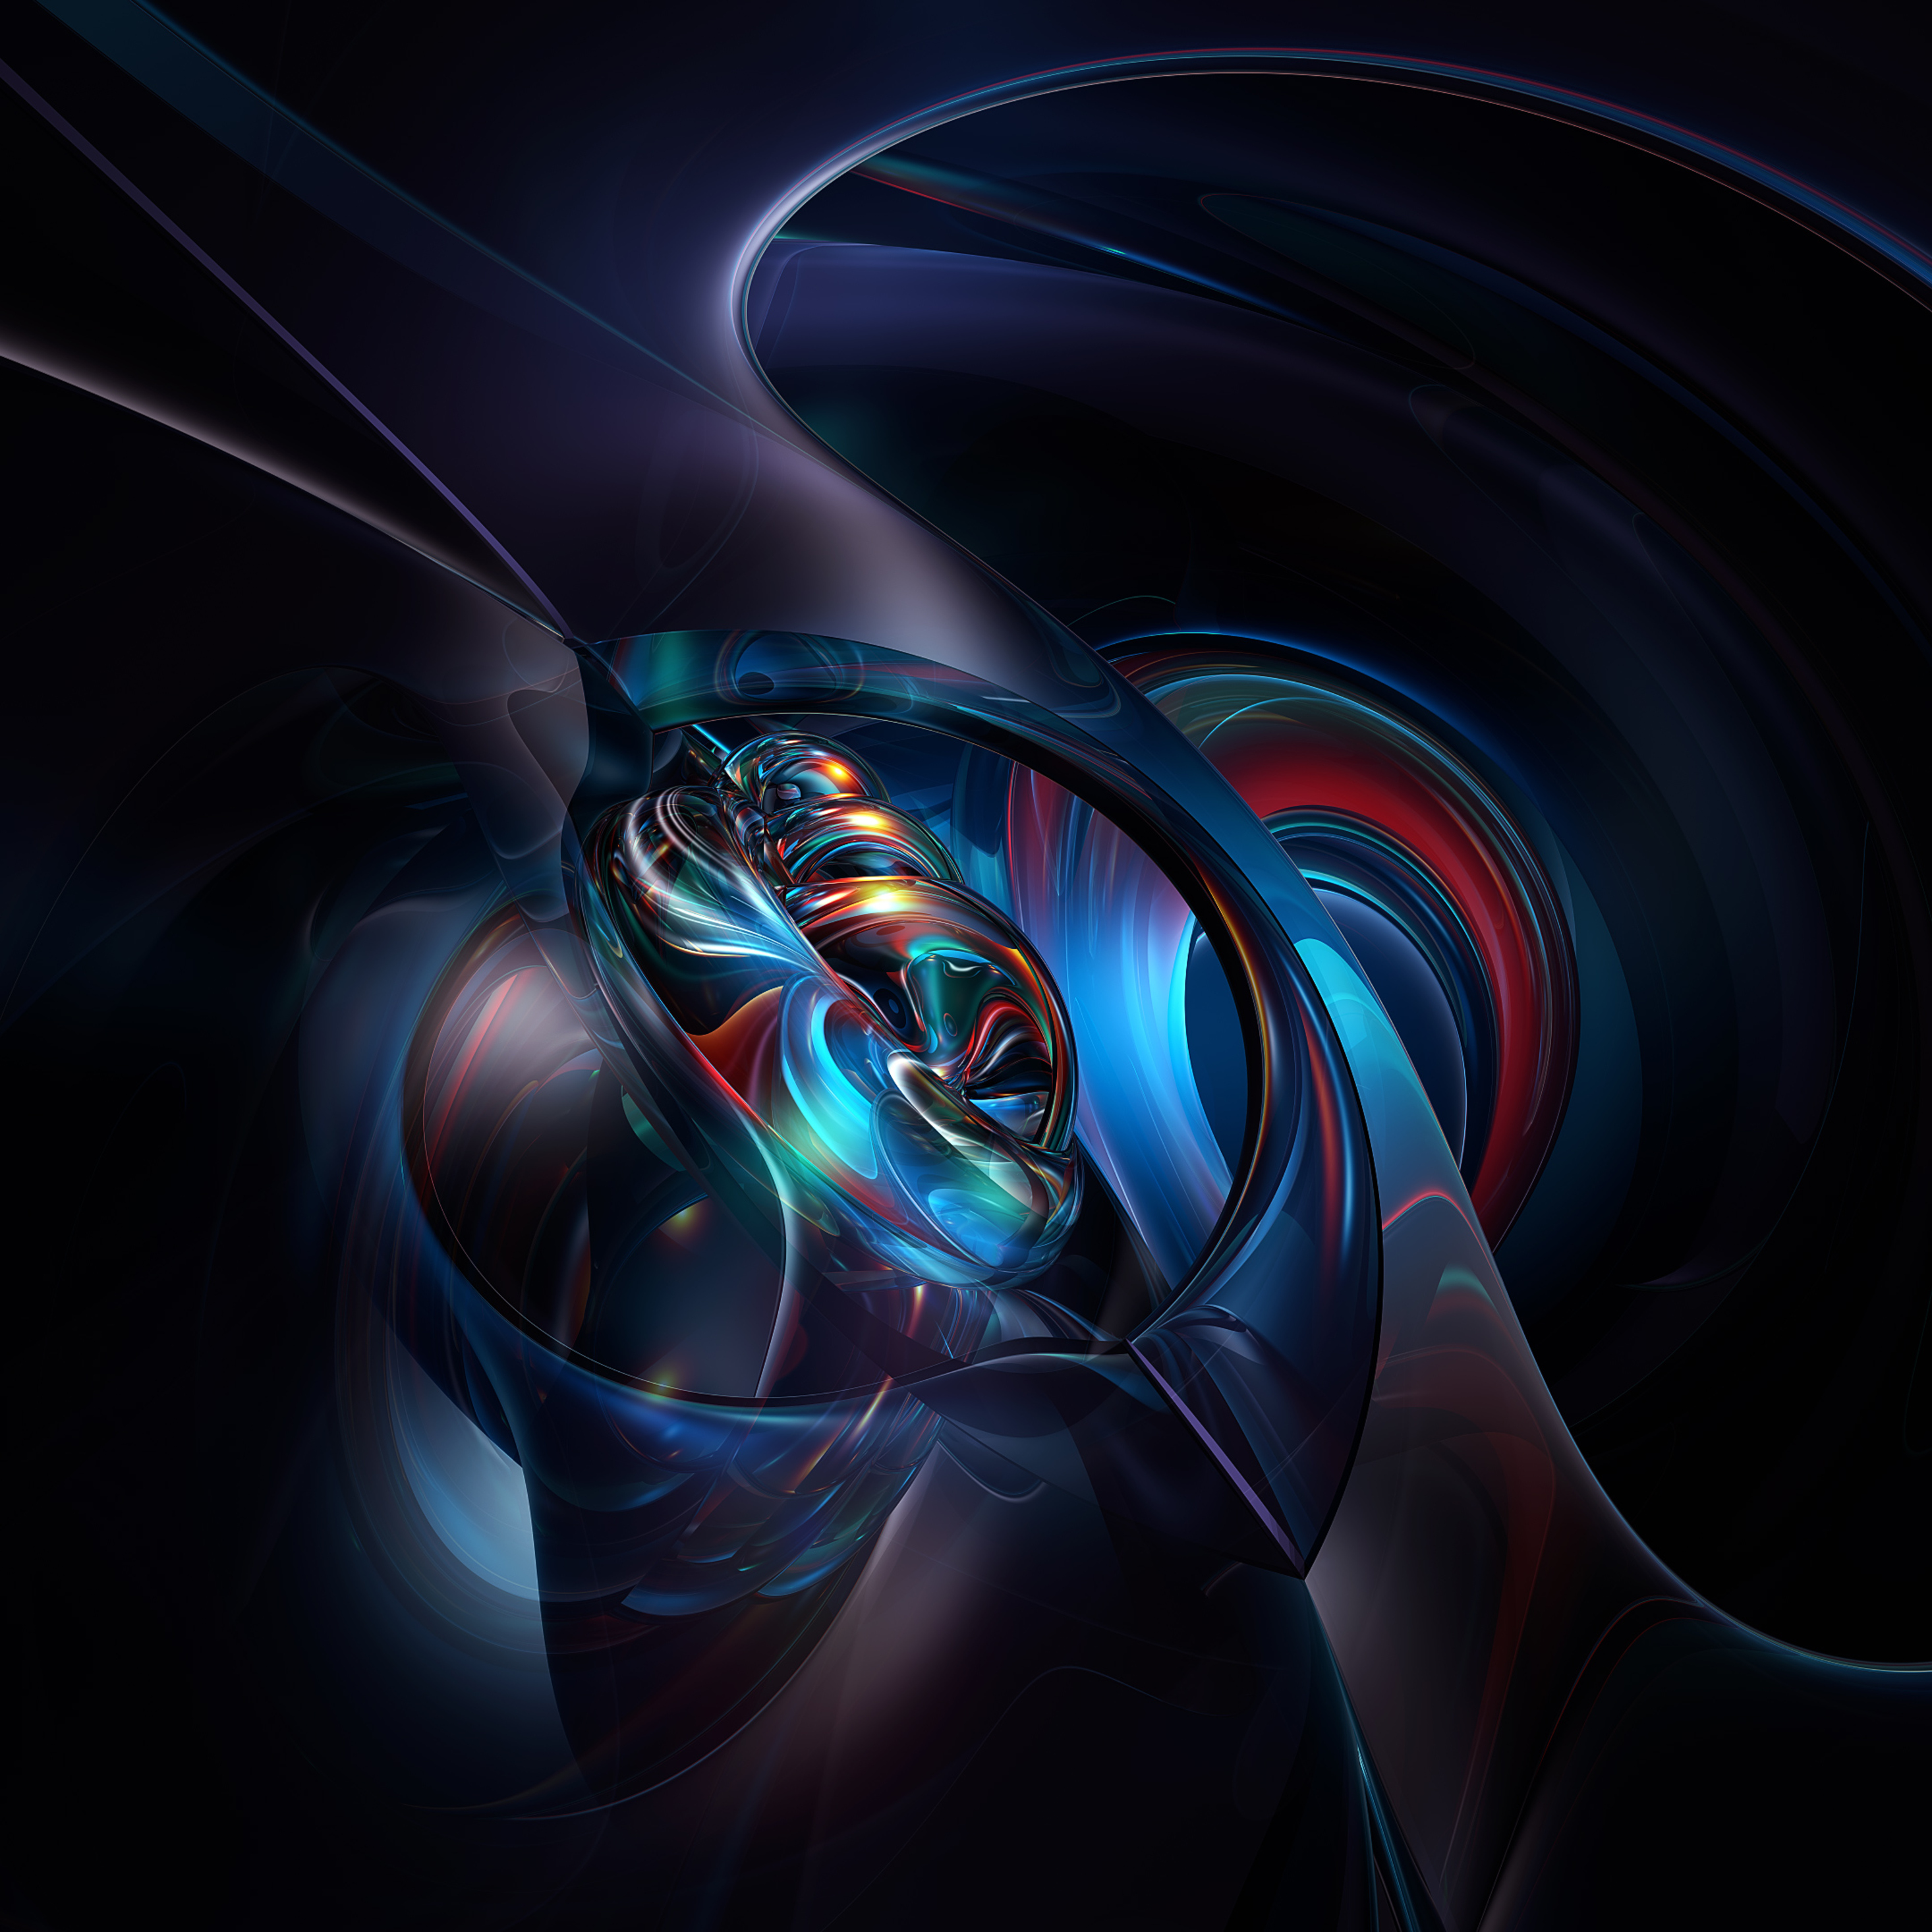 bauble-abstract-graphics-4k-pw.jpg